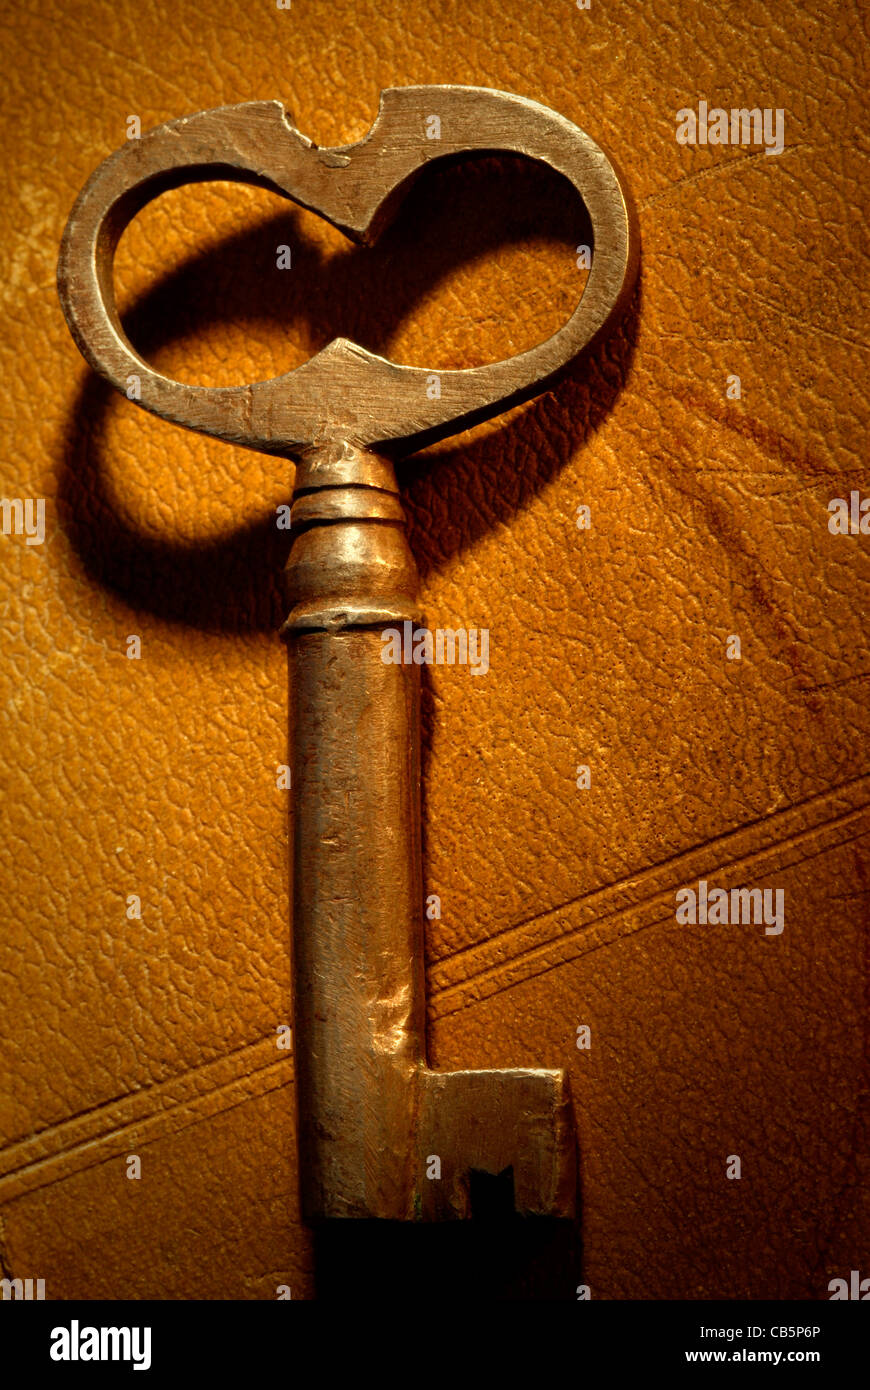 old key on the book,special photo f/x,focus on the center of image - Stock Image